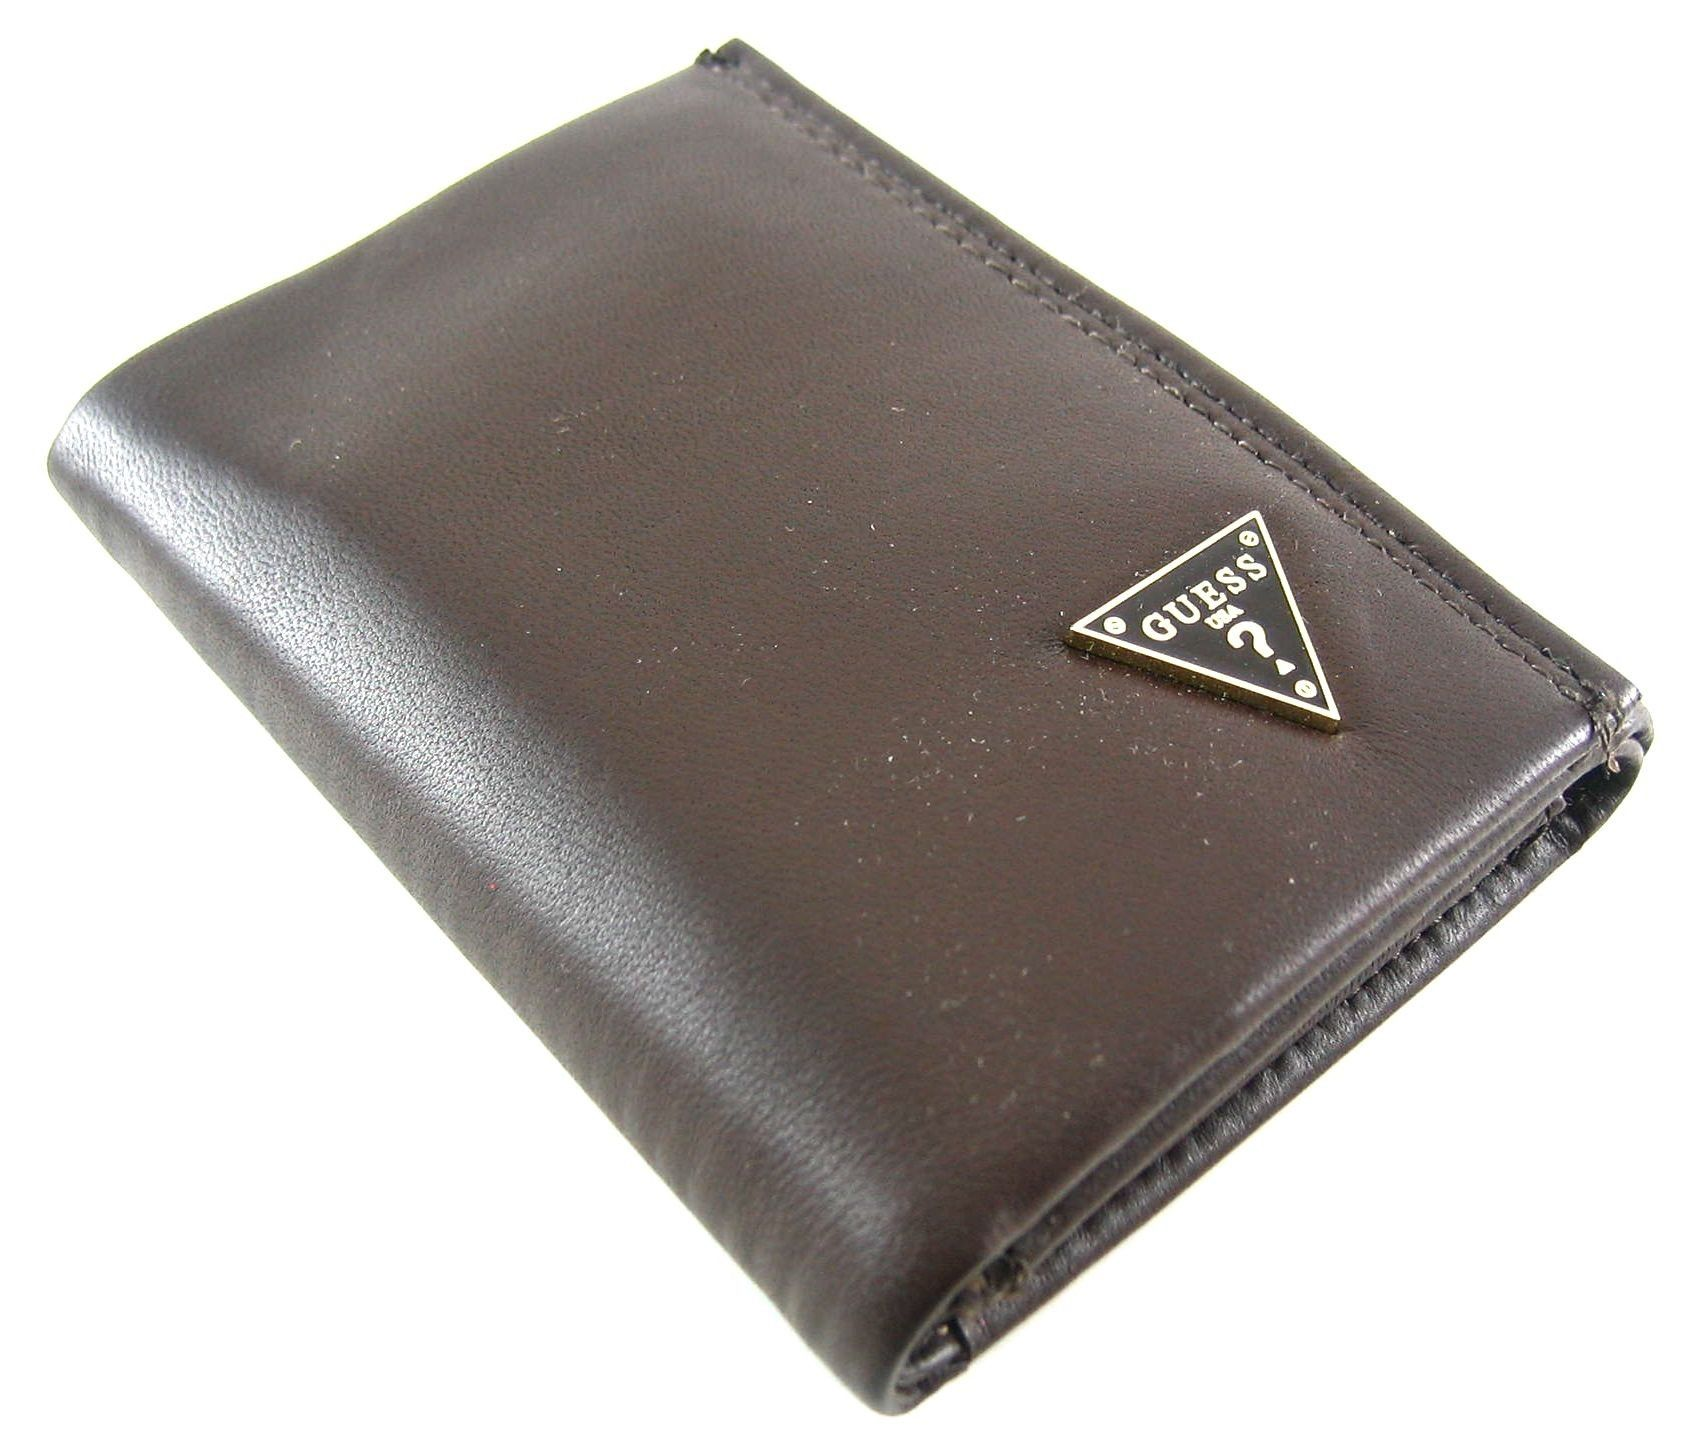 7aa844a611 Guess Cruz Brown Polished Lamb Leather Credit Card Trifold Wallet ...